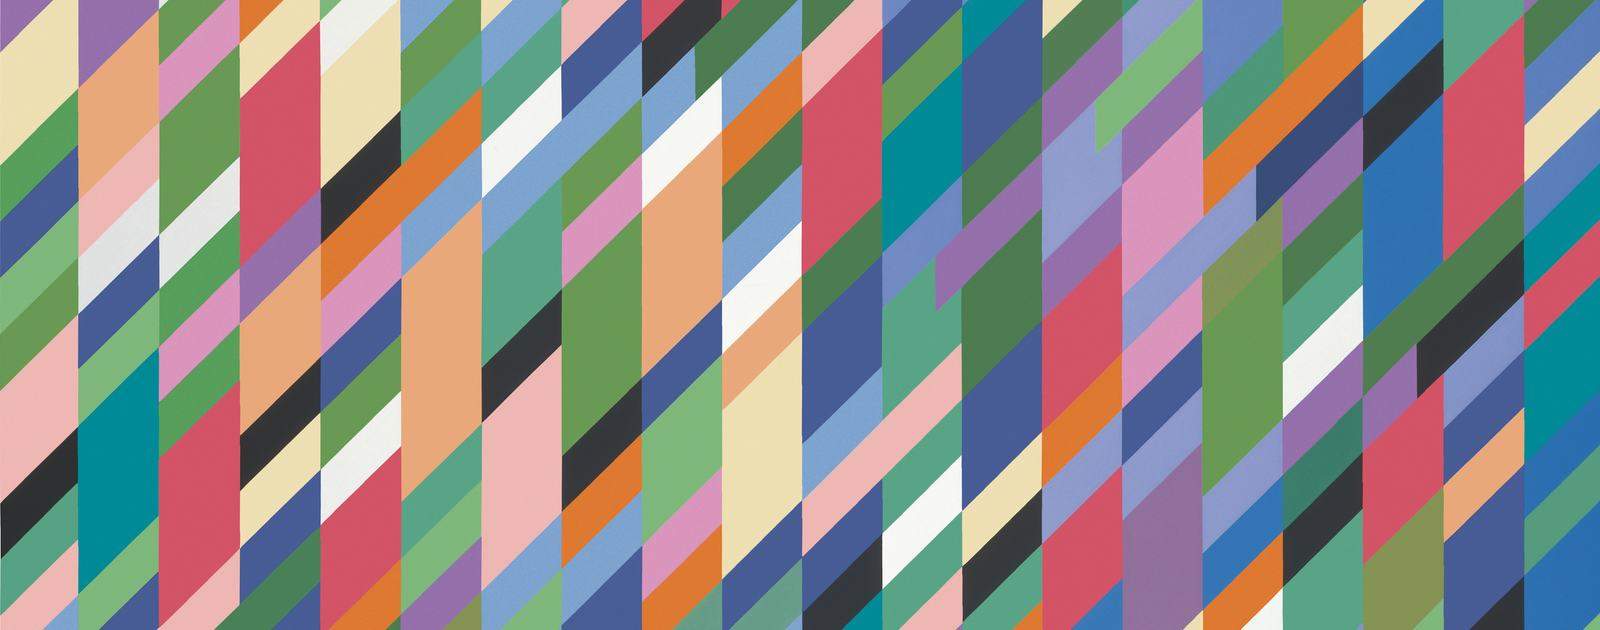 High Sky, 1991. Oil on canvas. 165 x 227 cm. Copyright Bridget Riley 2018. All rights reserved.